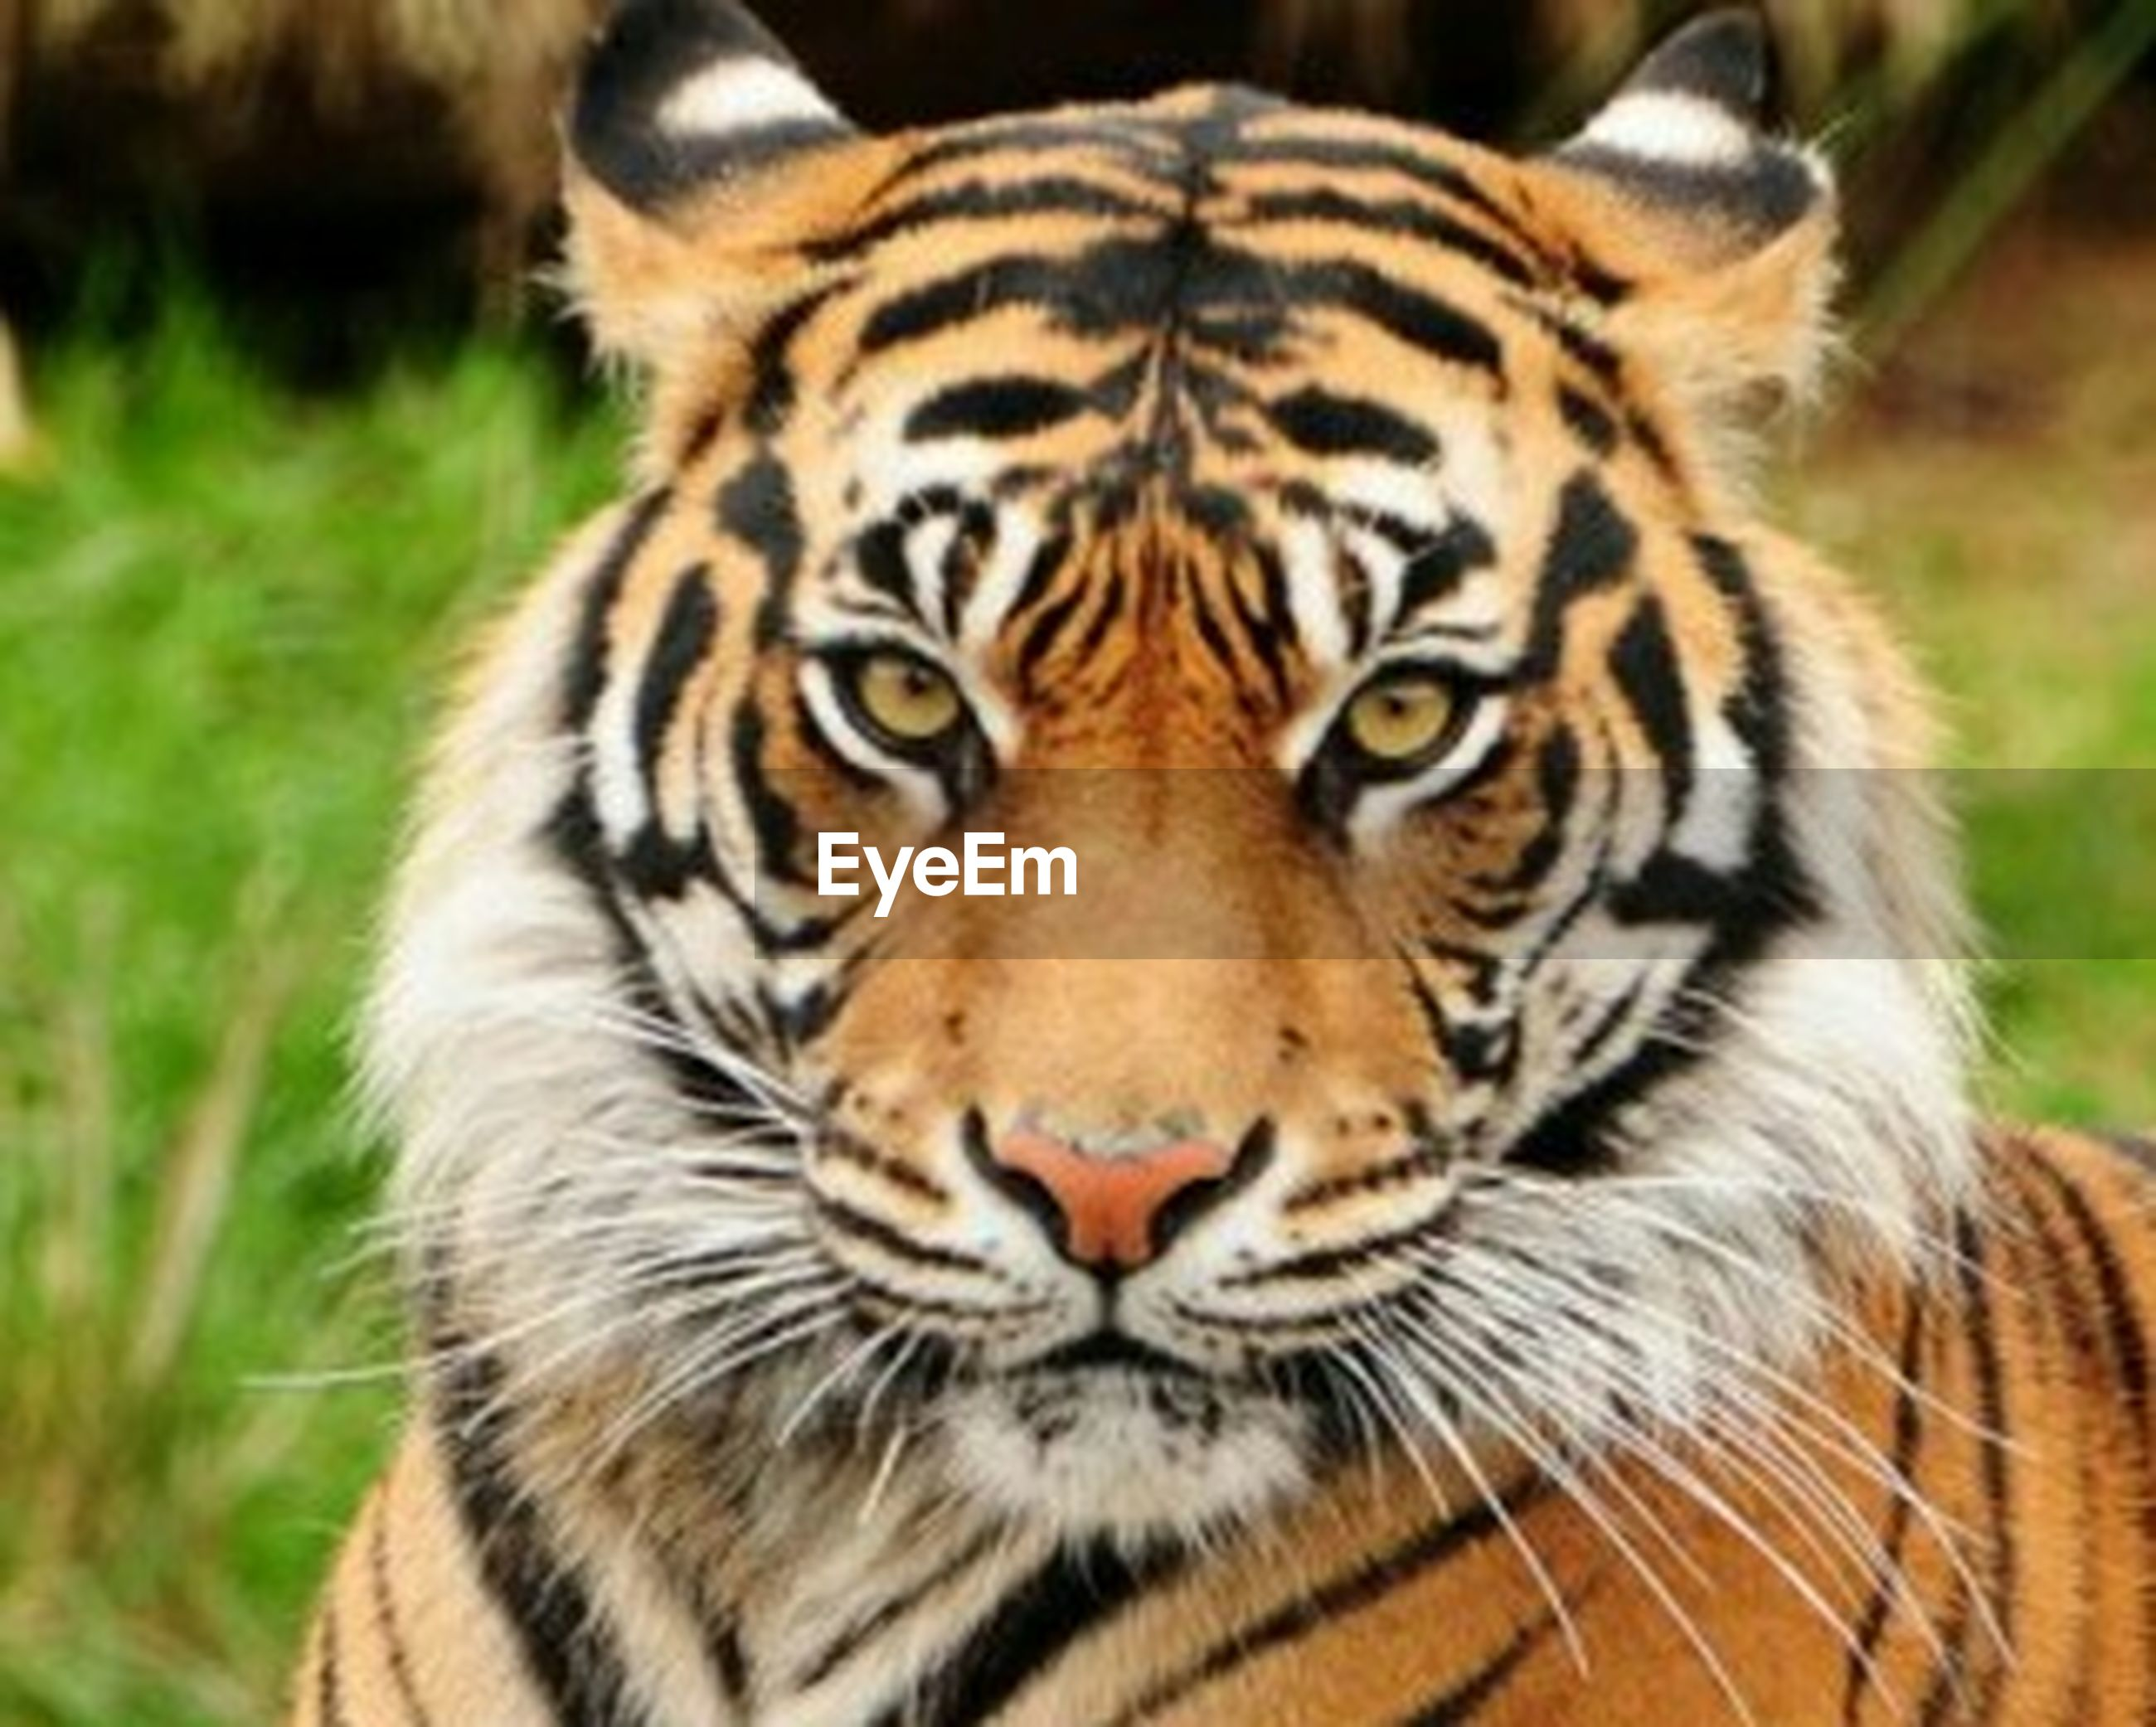 animal themes, one animal, animal markings, tiger, mammal, animals in the wild, wildlife, safari animals, undomesticated cat, focus on foreground, animal head, big cat, close-up, natural pattern, endangered species, leopard, whisker, looking at camera, portrait, zoo